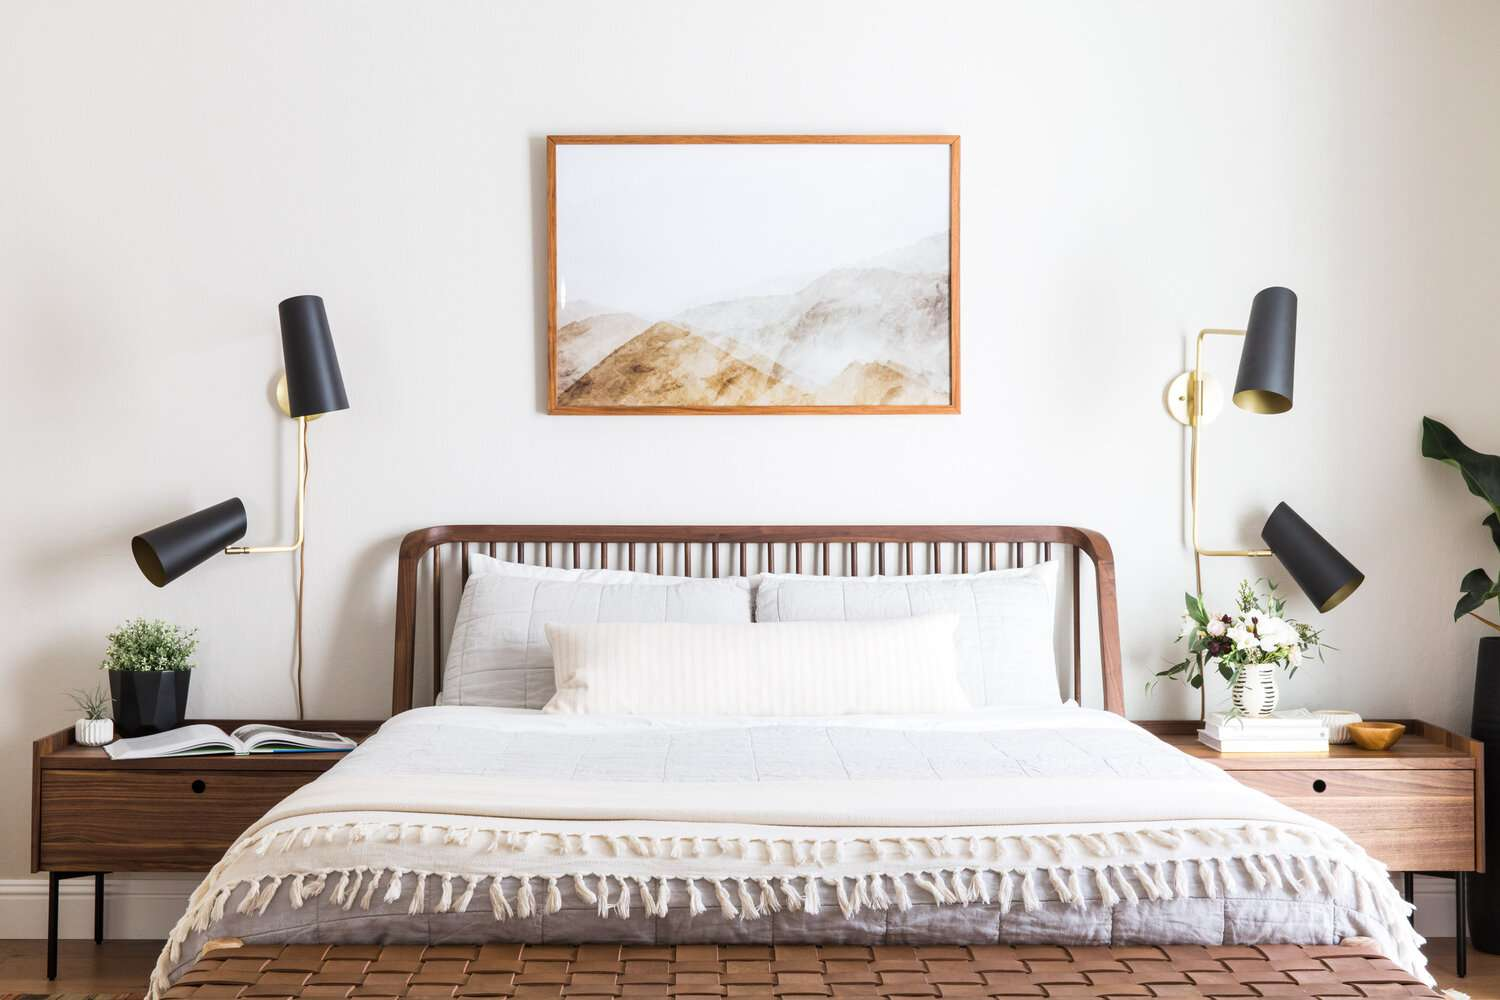 does thread count matter? simple bedroom with layered sheets and wooden headboard